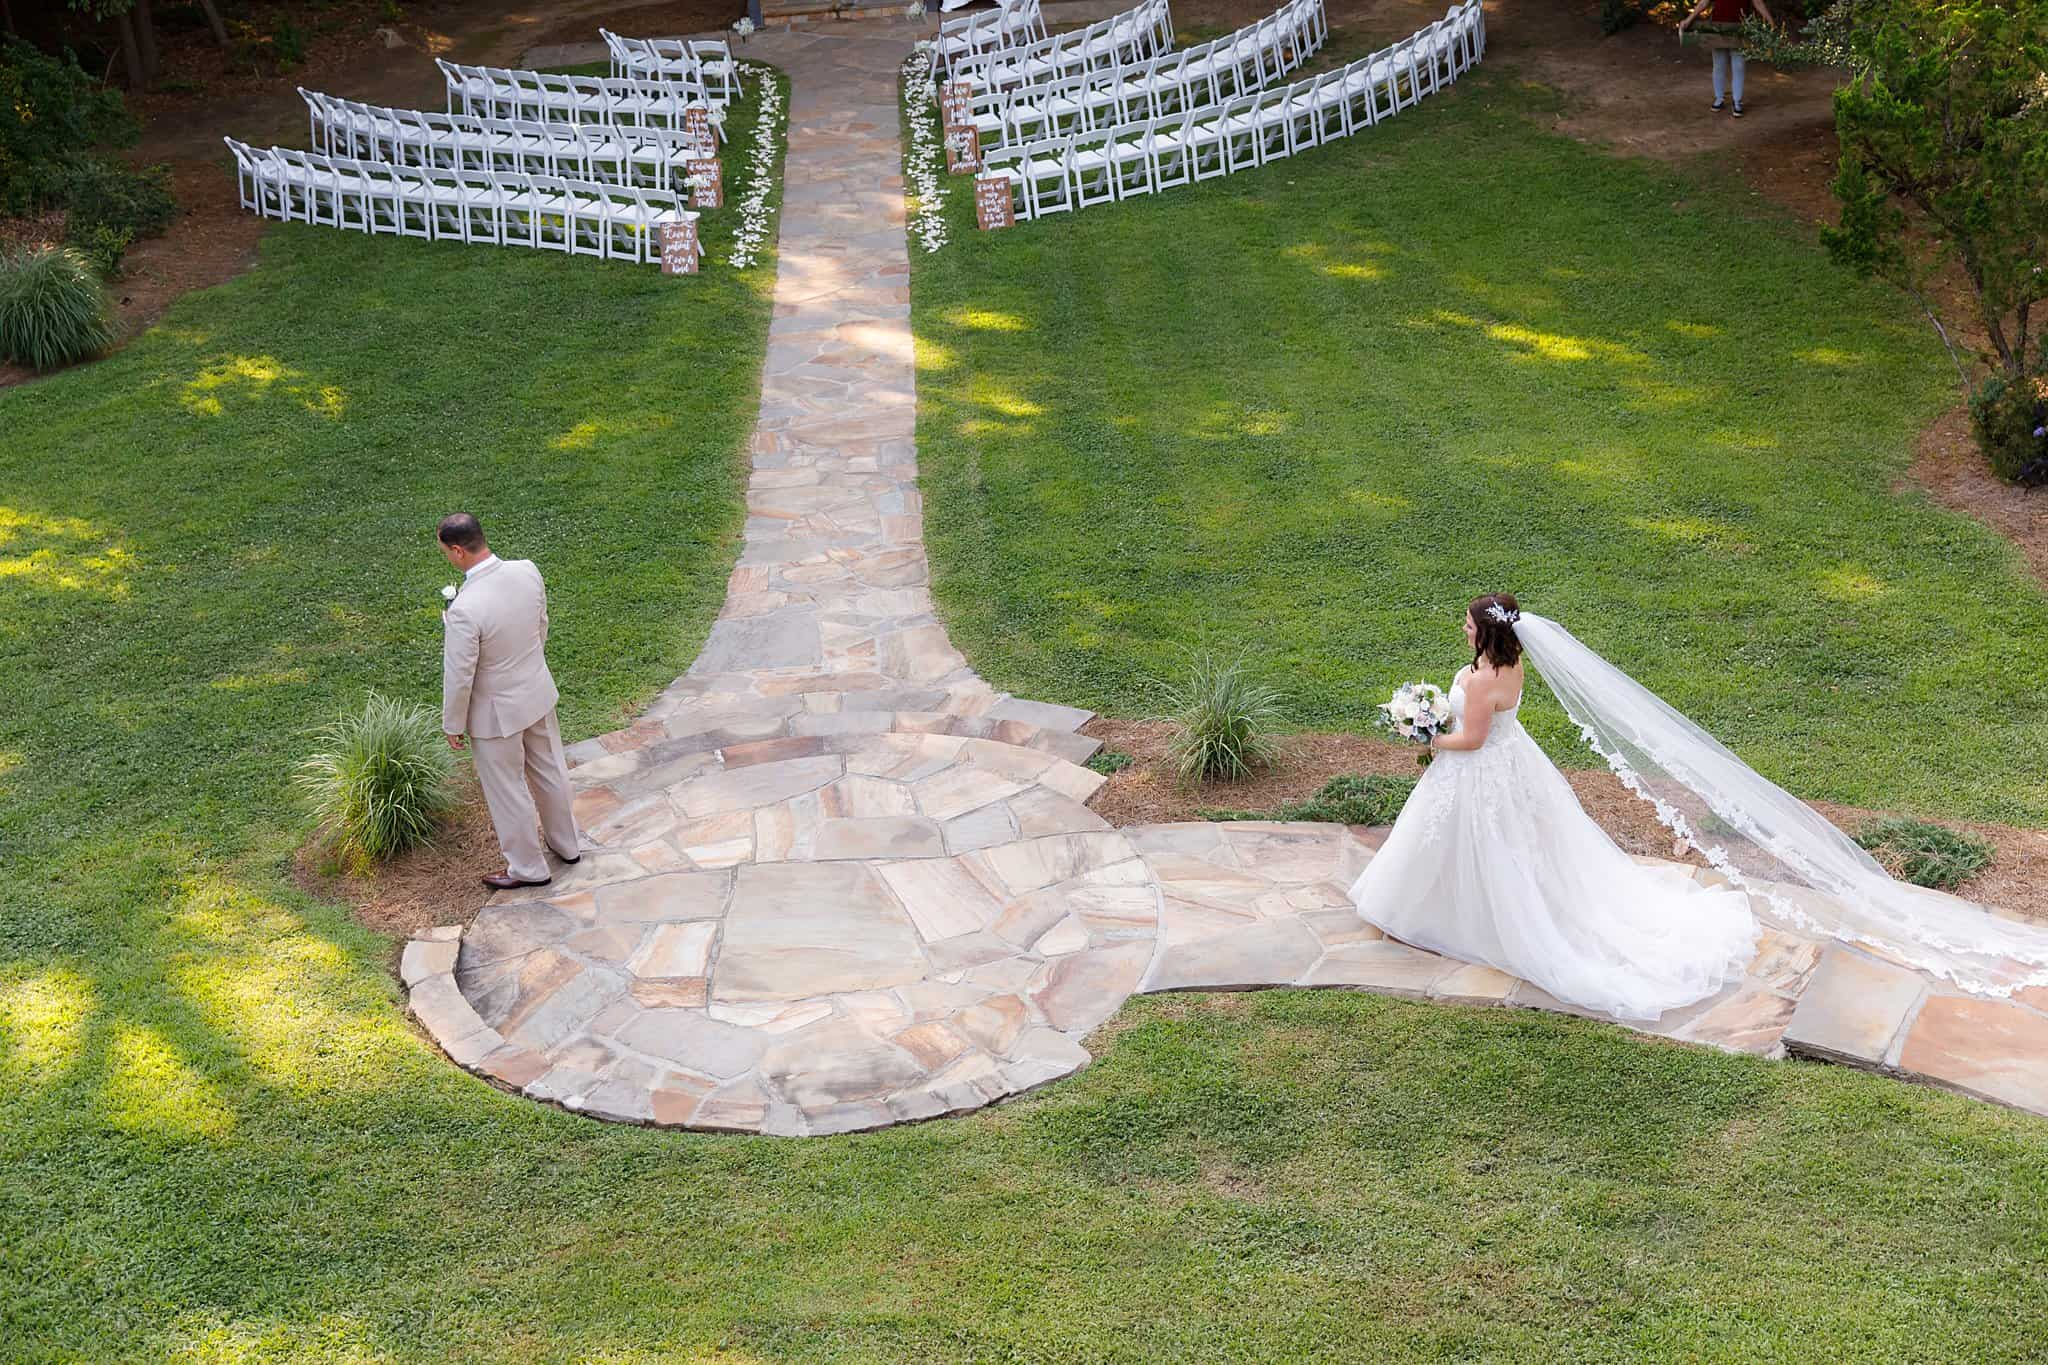 Bride and Groom at First Look outdoors before Wedding Ceremony